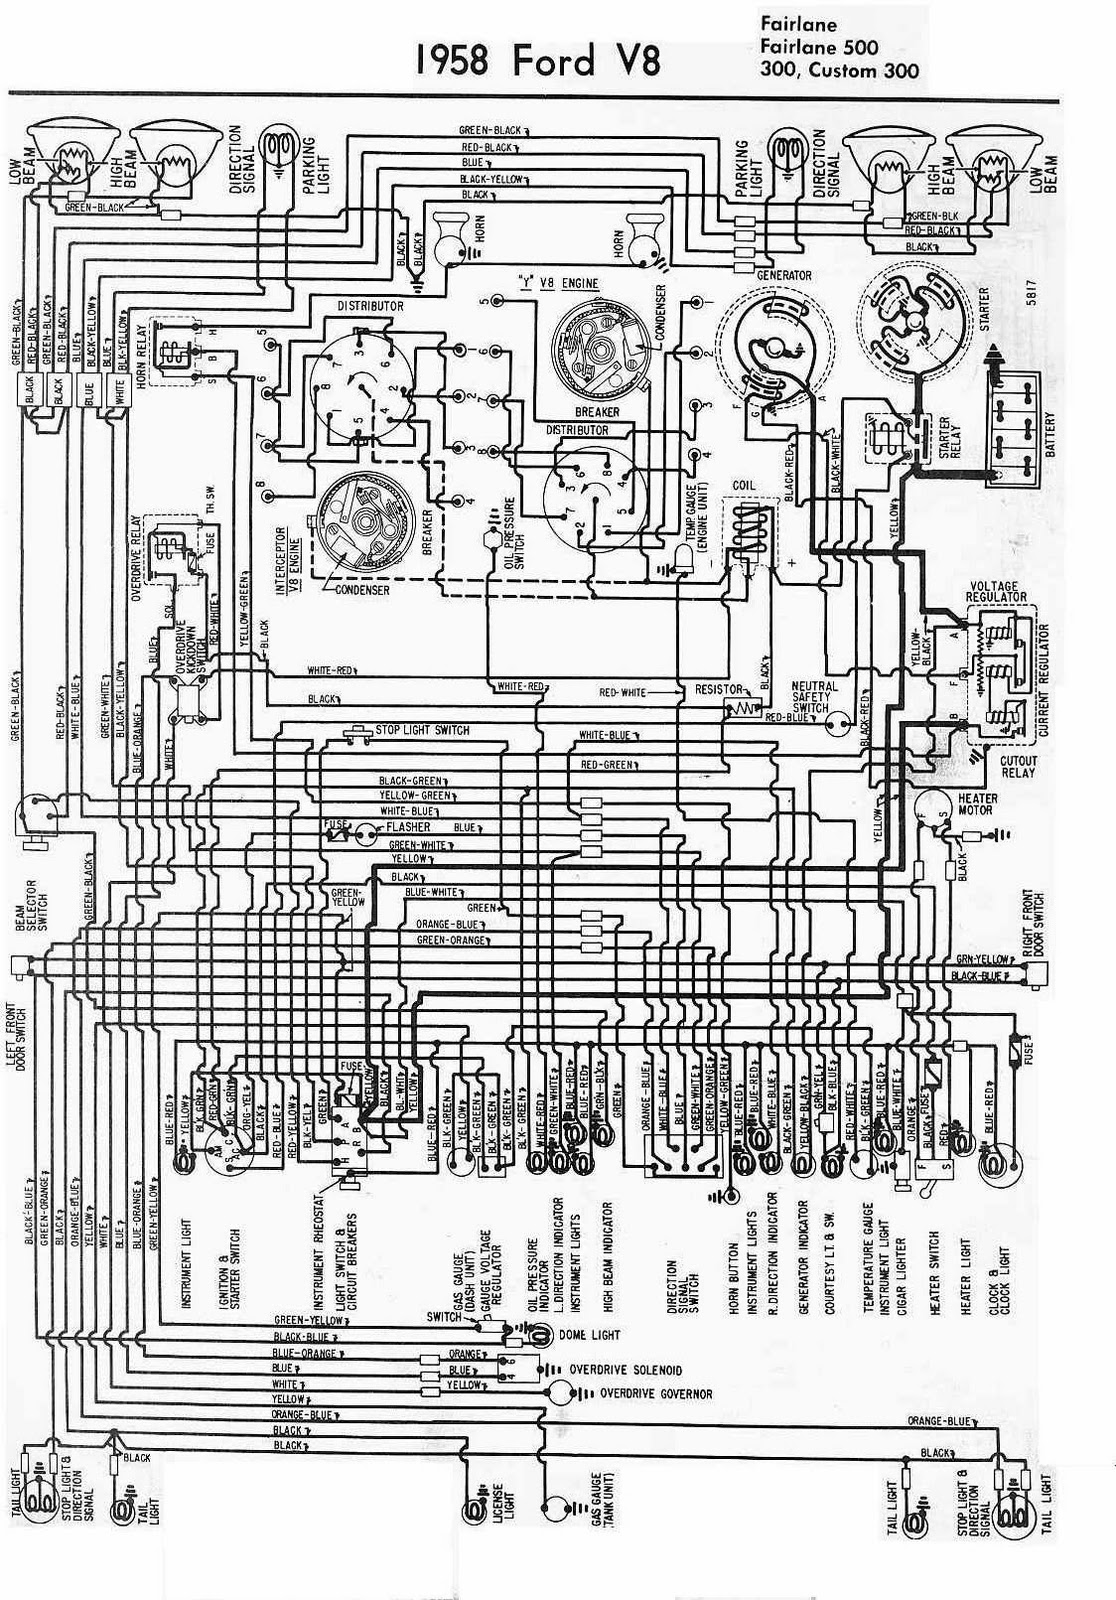 electrical wiring diagram for 1958 ford v8 all about wiring diagrams. Black Bedroom Furniture Sets. Home Design Ideas